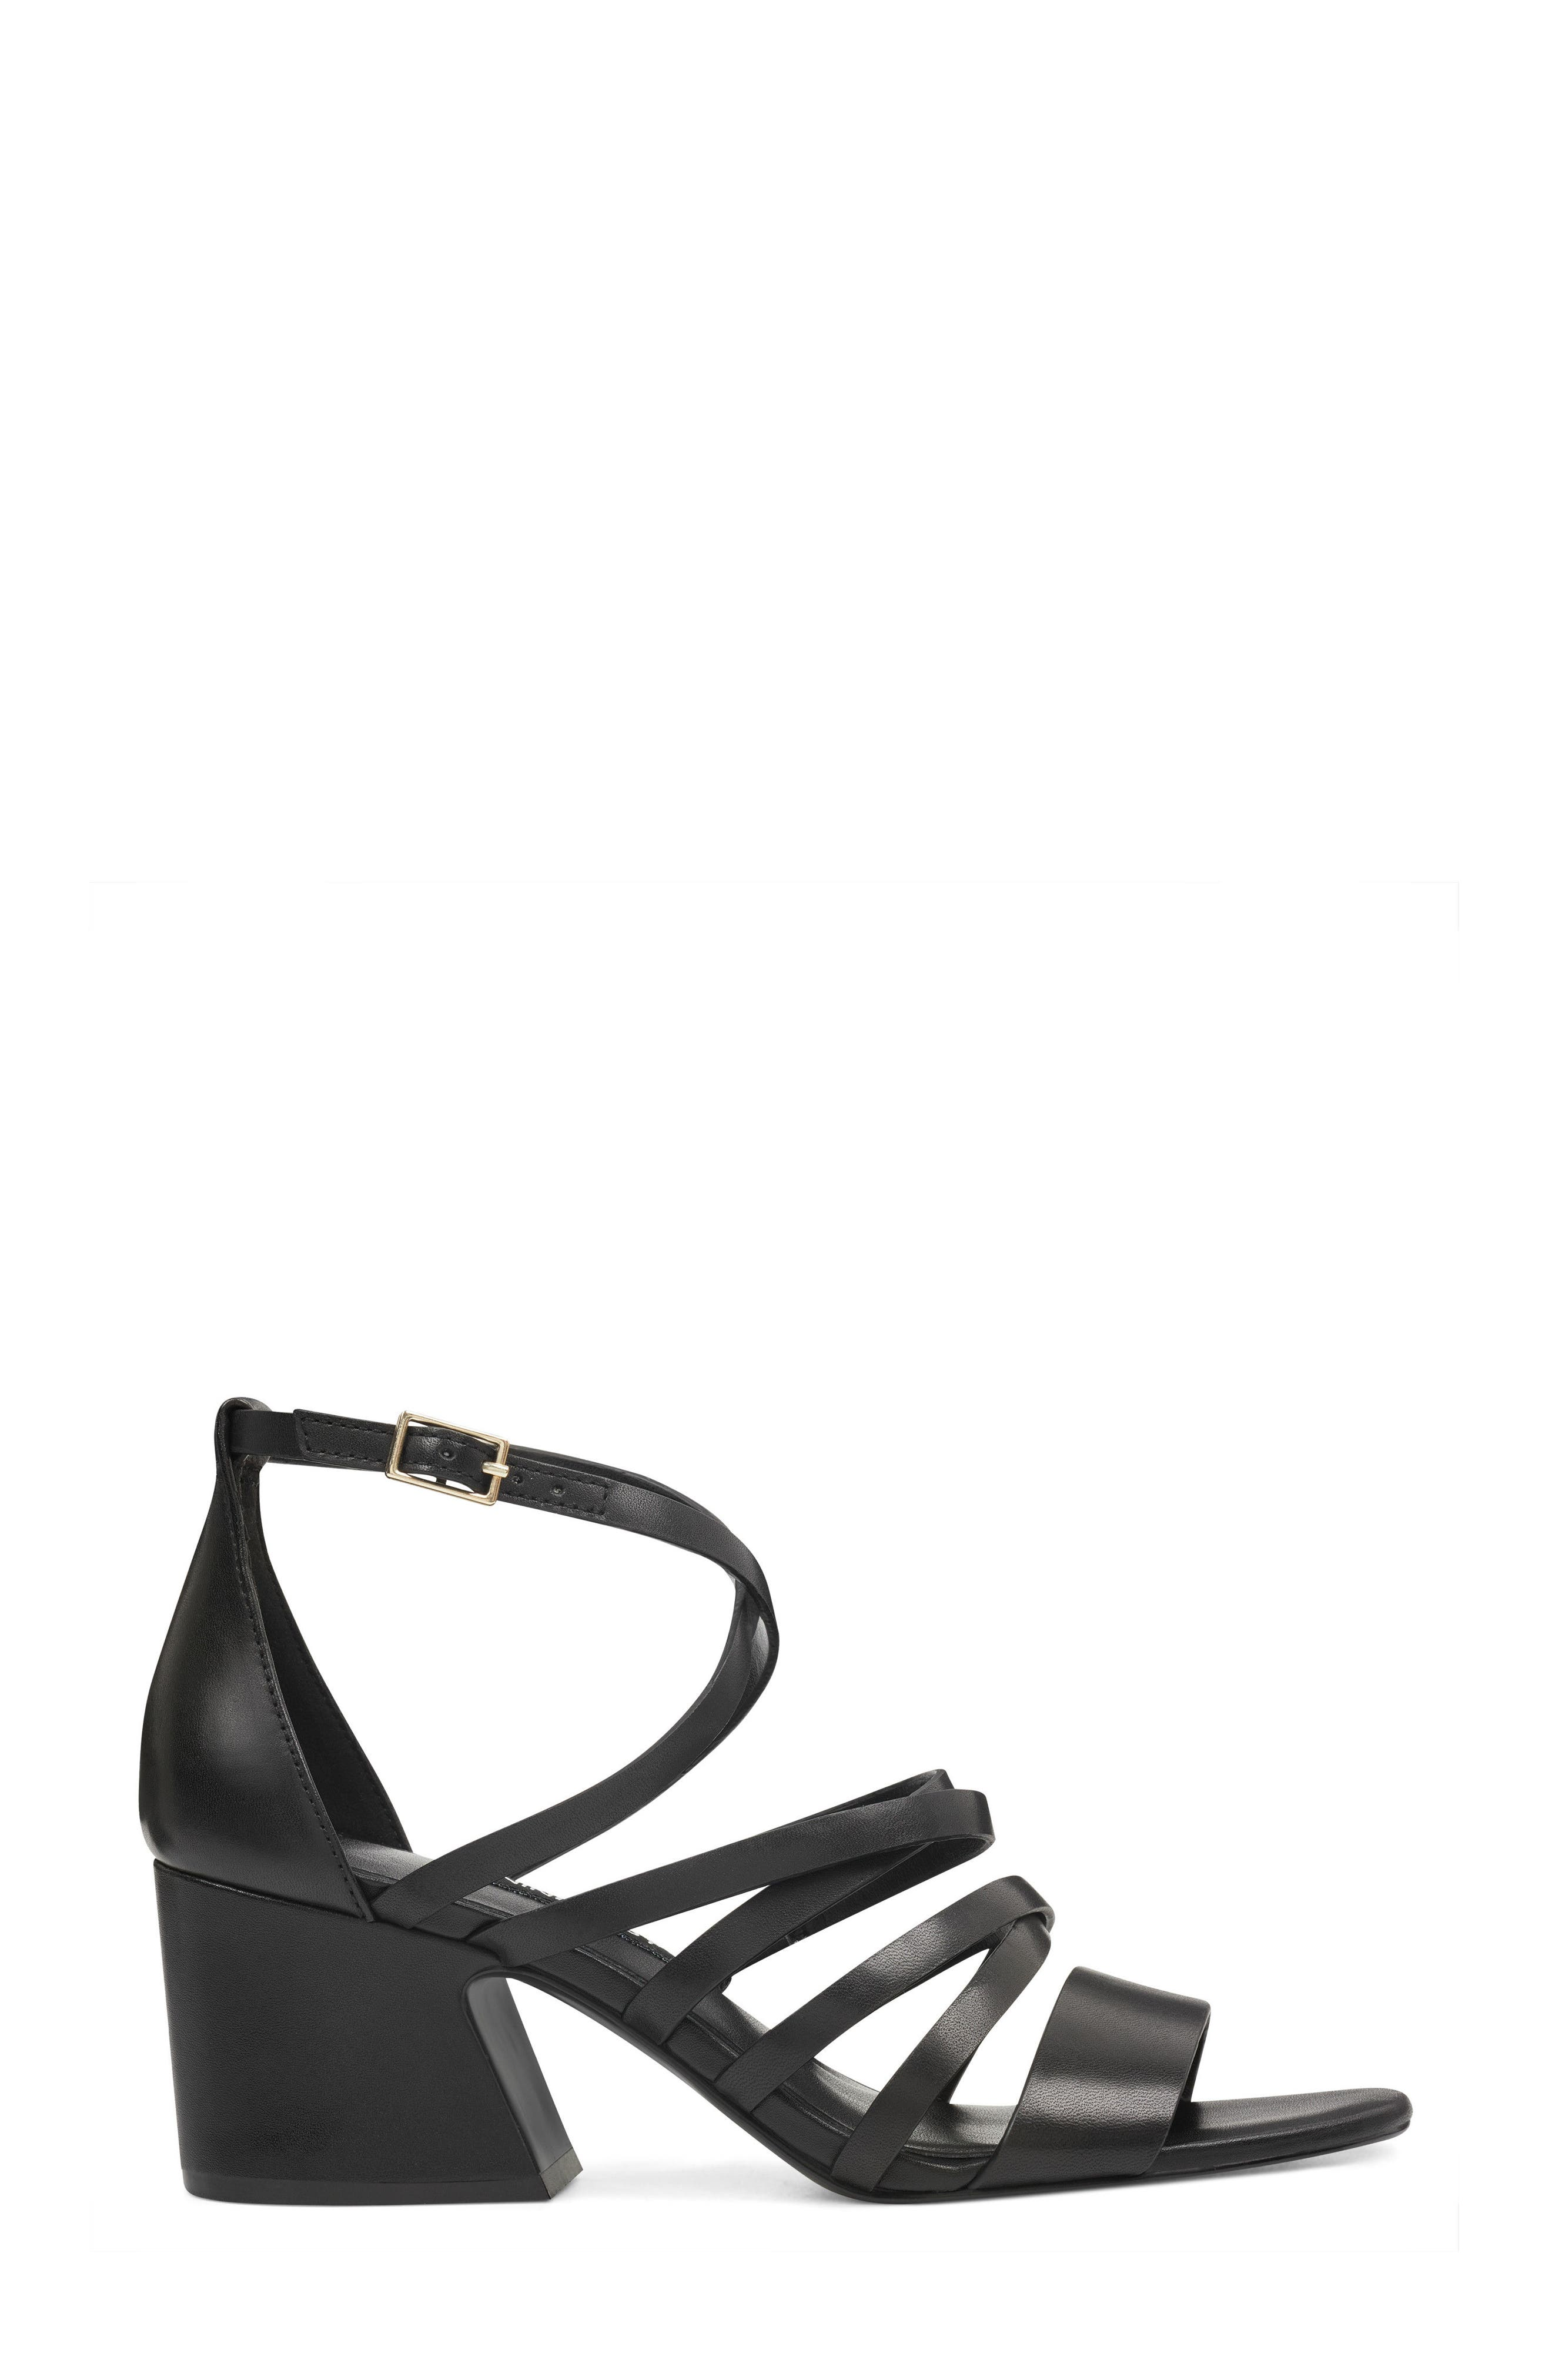 Youlo Strappy Cage Sandal,                             Alternate thumbnail 3, color,                             BLACK LEATHER